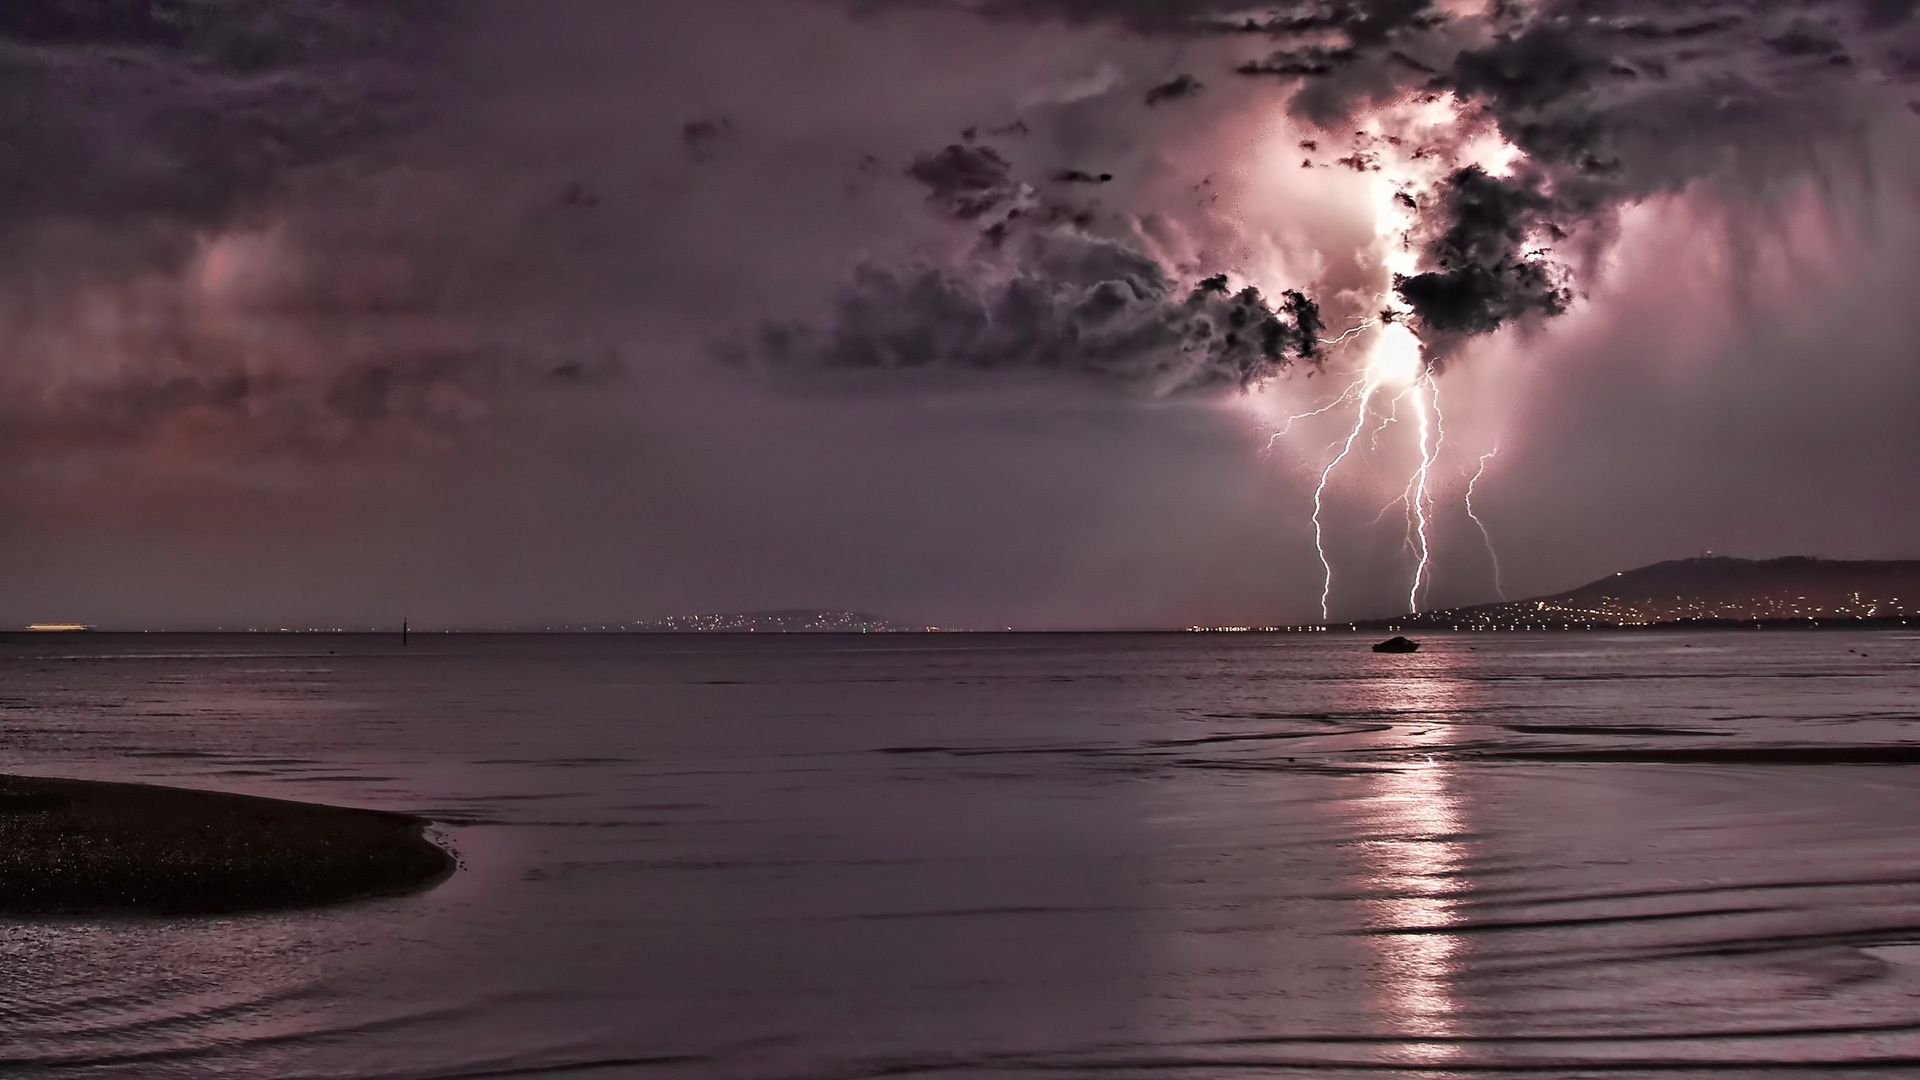 Storm Lightning Dark Clouds Sea Night